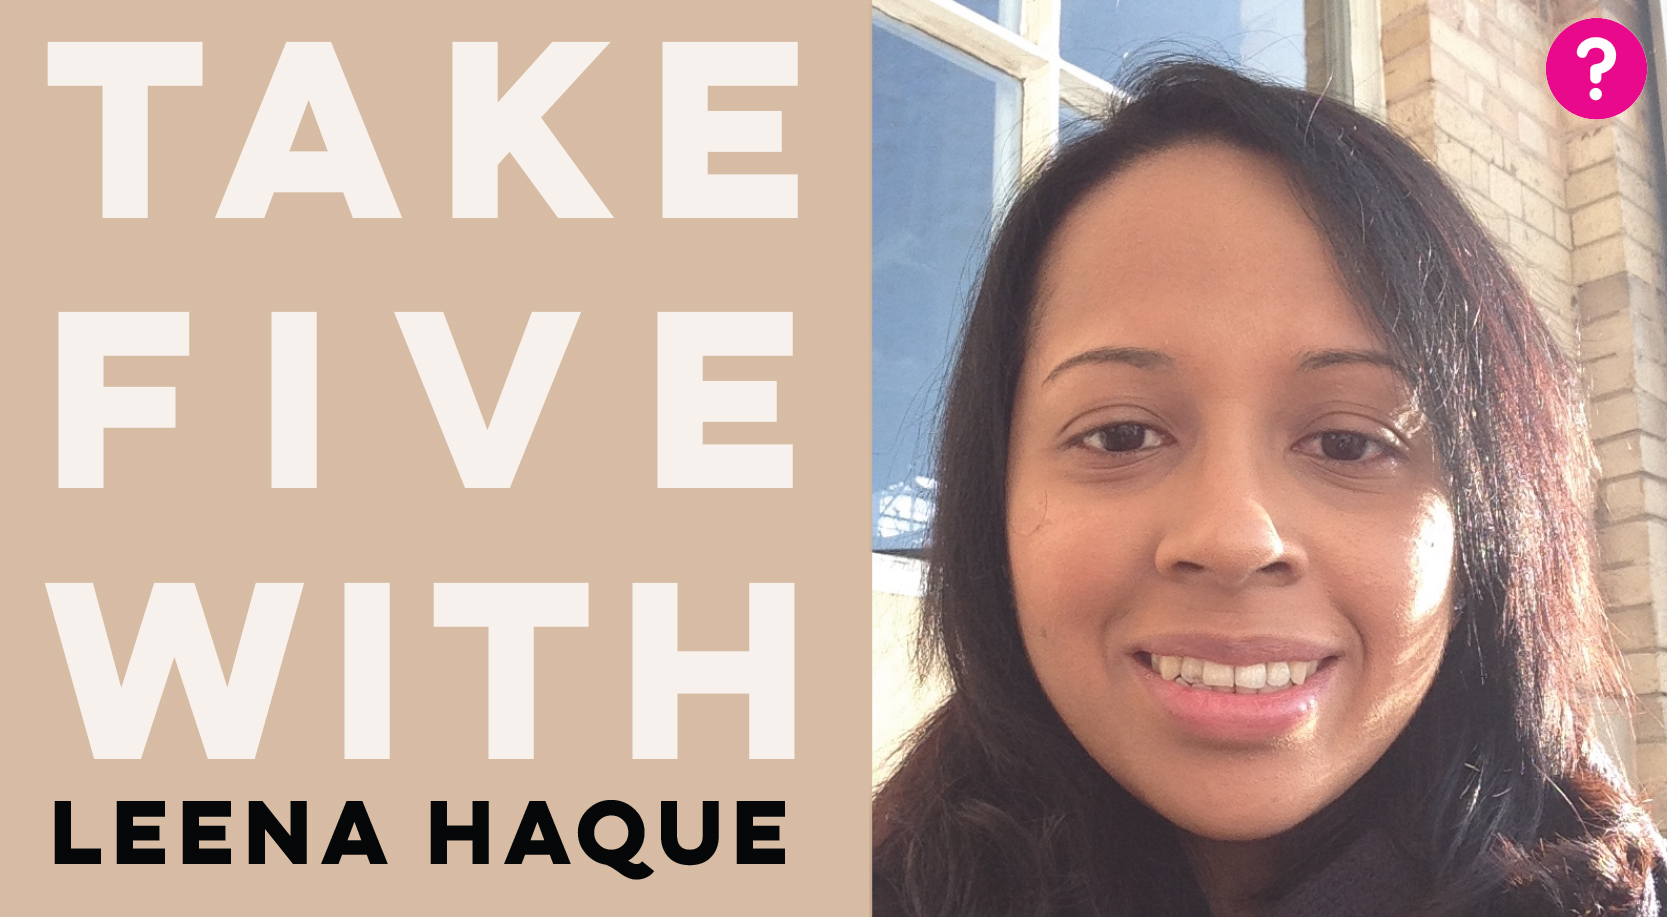 #TakeFiveWith Leena Haque - pictured is Leena Haque smiling into the camera